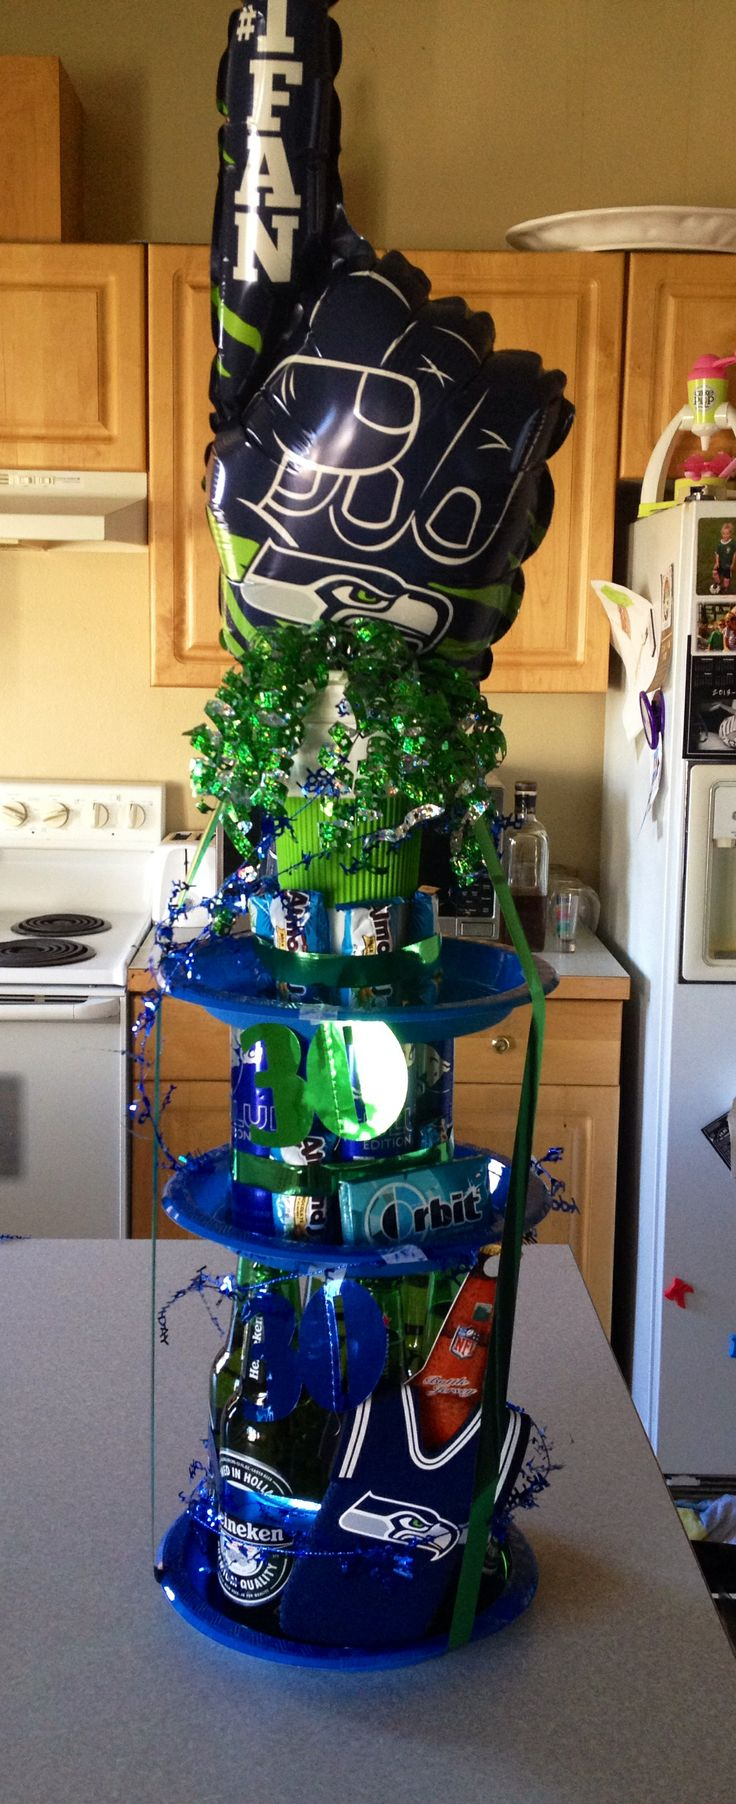 Seahawks Birthday Cake 6 green bottles (beer) 4 cans (blue red bull) 1 cup (topper) 8 mini candy bars (almond joy) 3 blue Plates-make a tower starting with the bottles... Seahawk stuff: beer cozy, Seahawk fan stick (topper) Green & blue ribbon and bows